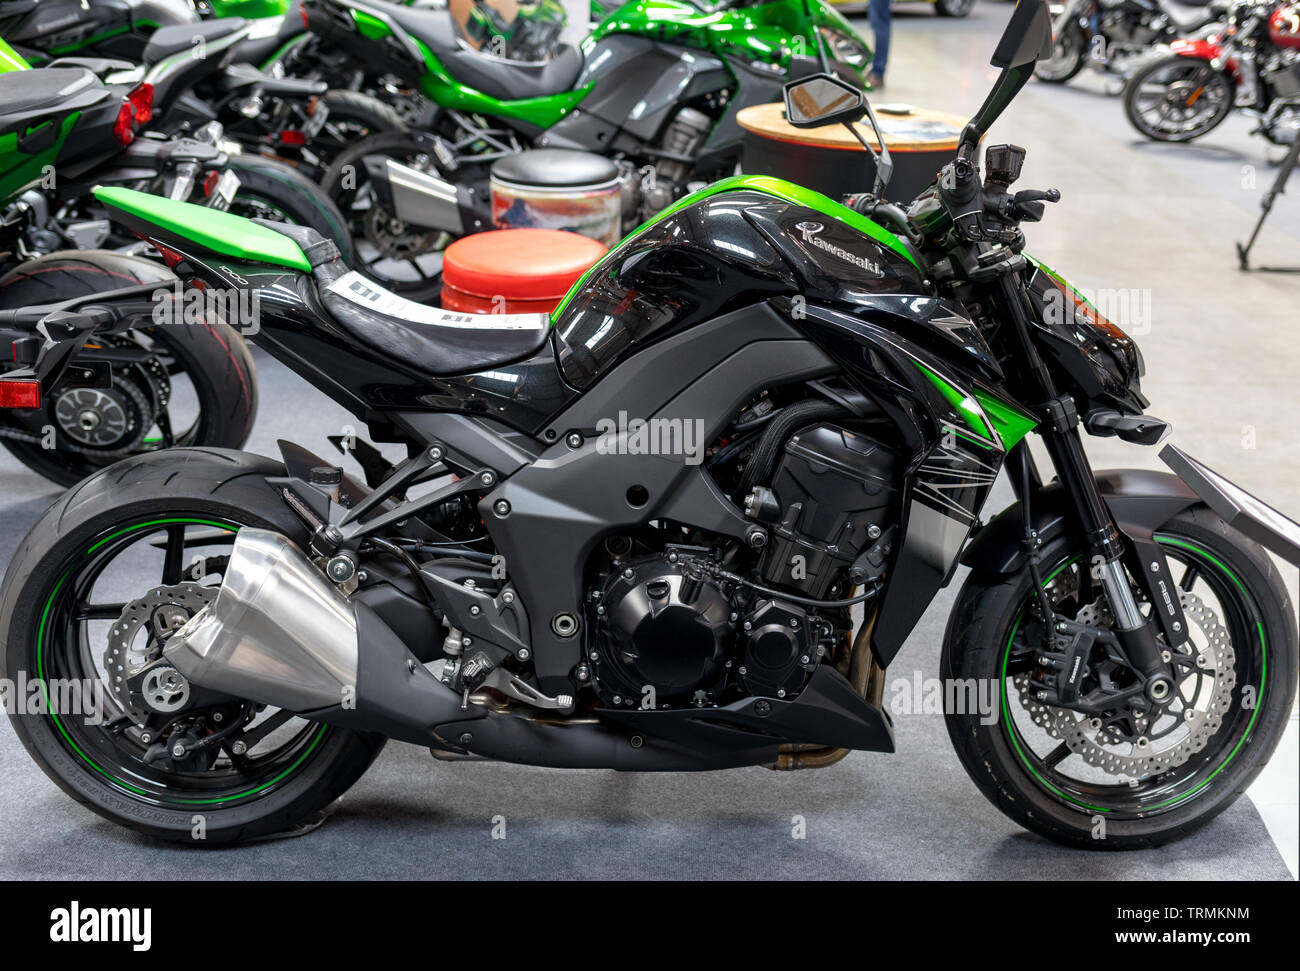 Cracow, Poland - May 18, 2019: Kawasaki motorcycle displayed at Moto Show in Krakow. Poland. Exhibitors present  most interesting aspects of the autom - Stock Image